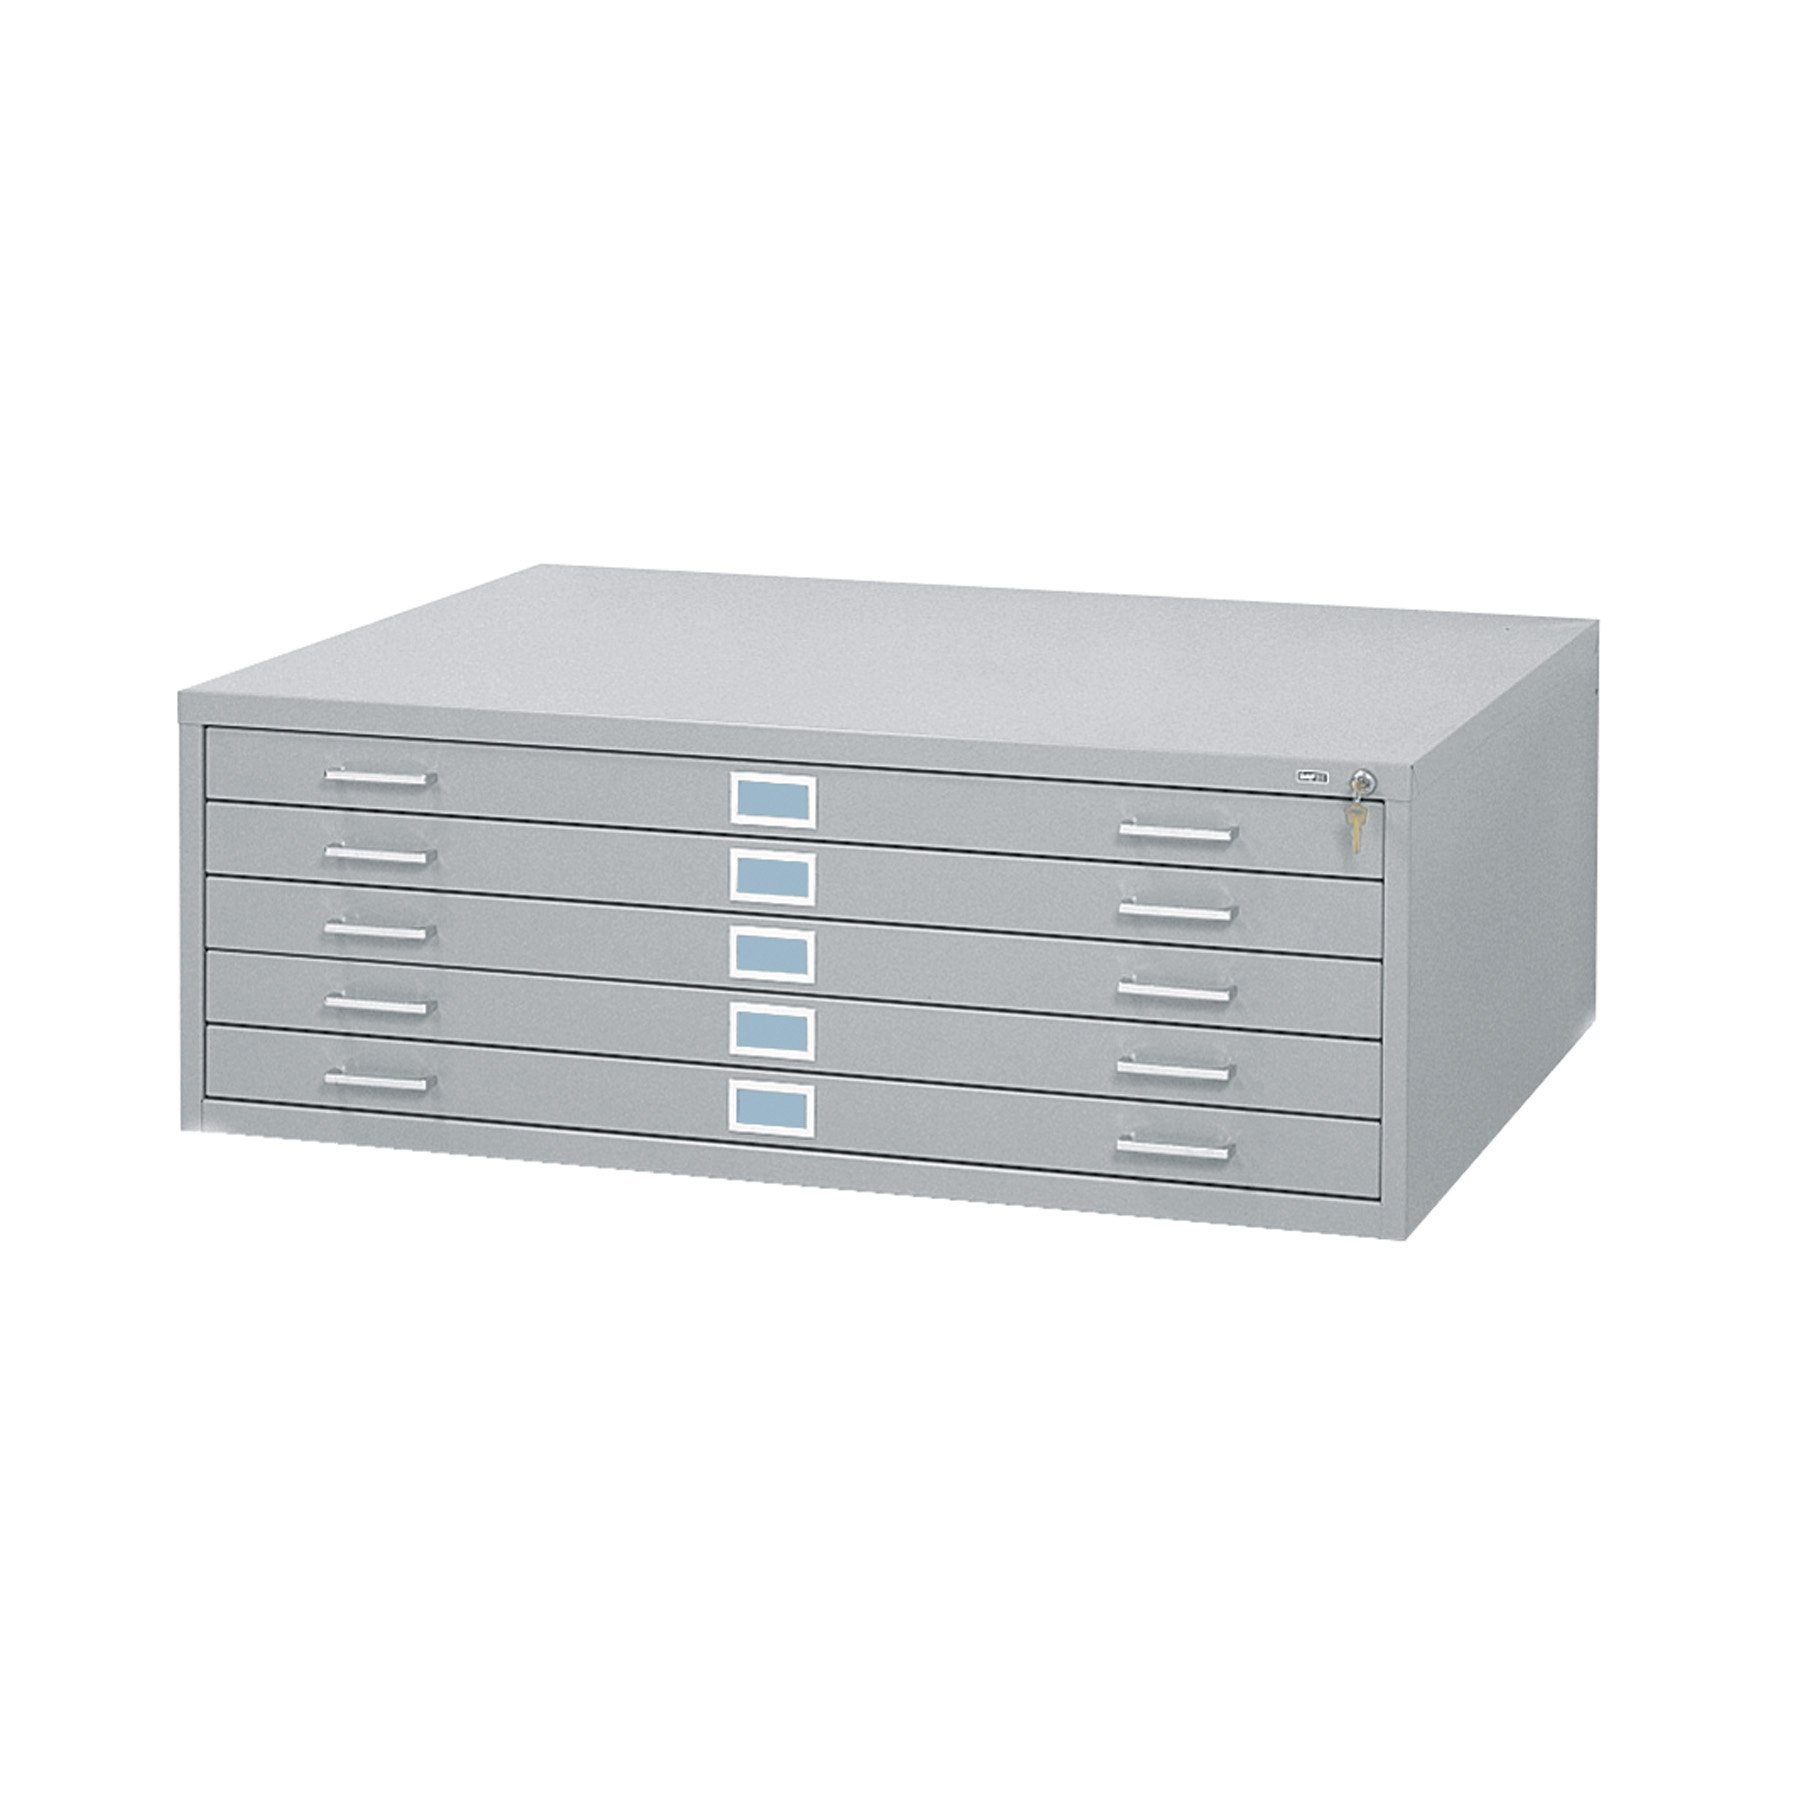 Safco Products 4996GRR Flat File for 42''W x 30''D Documents, 5-Drawer (Additional options sold separately), Gray by Safco